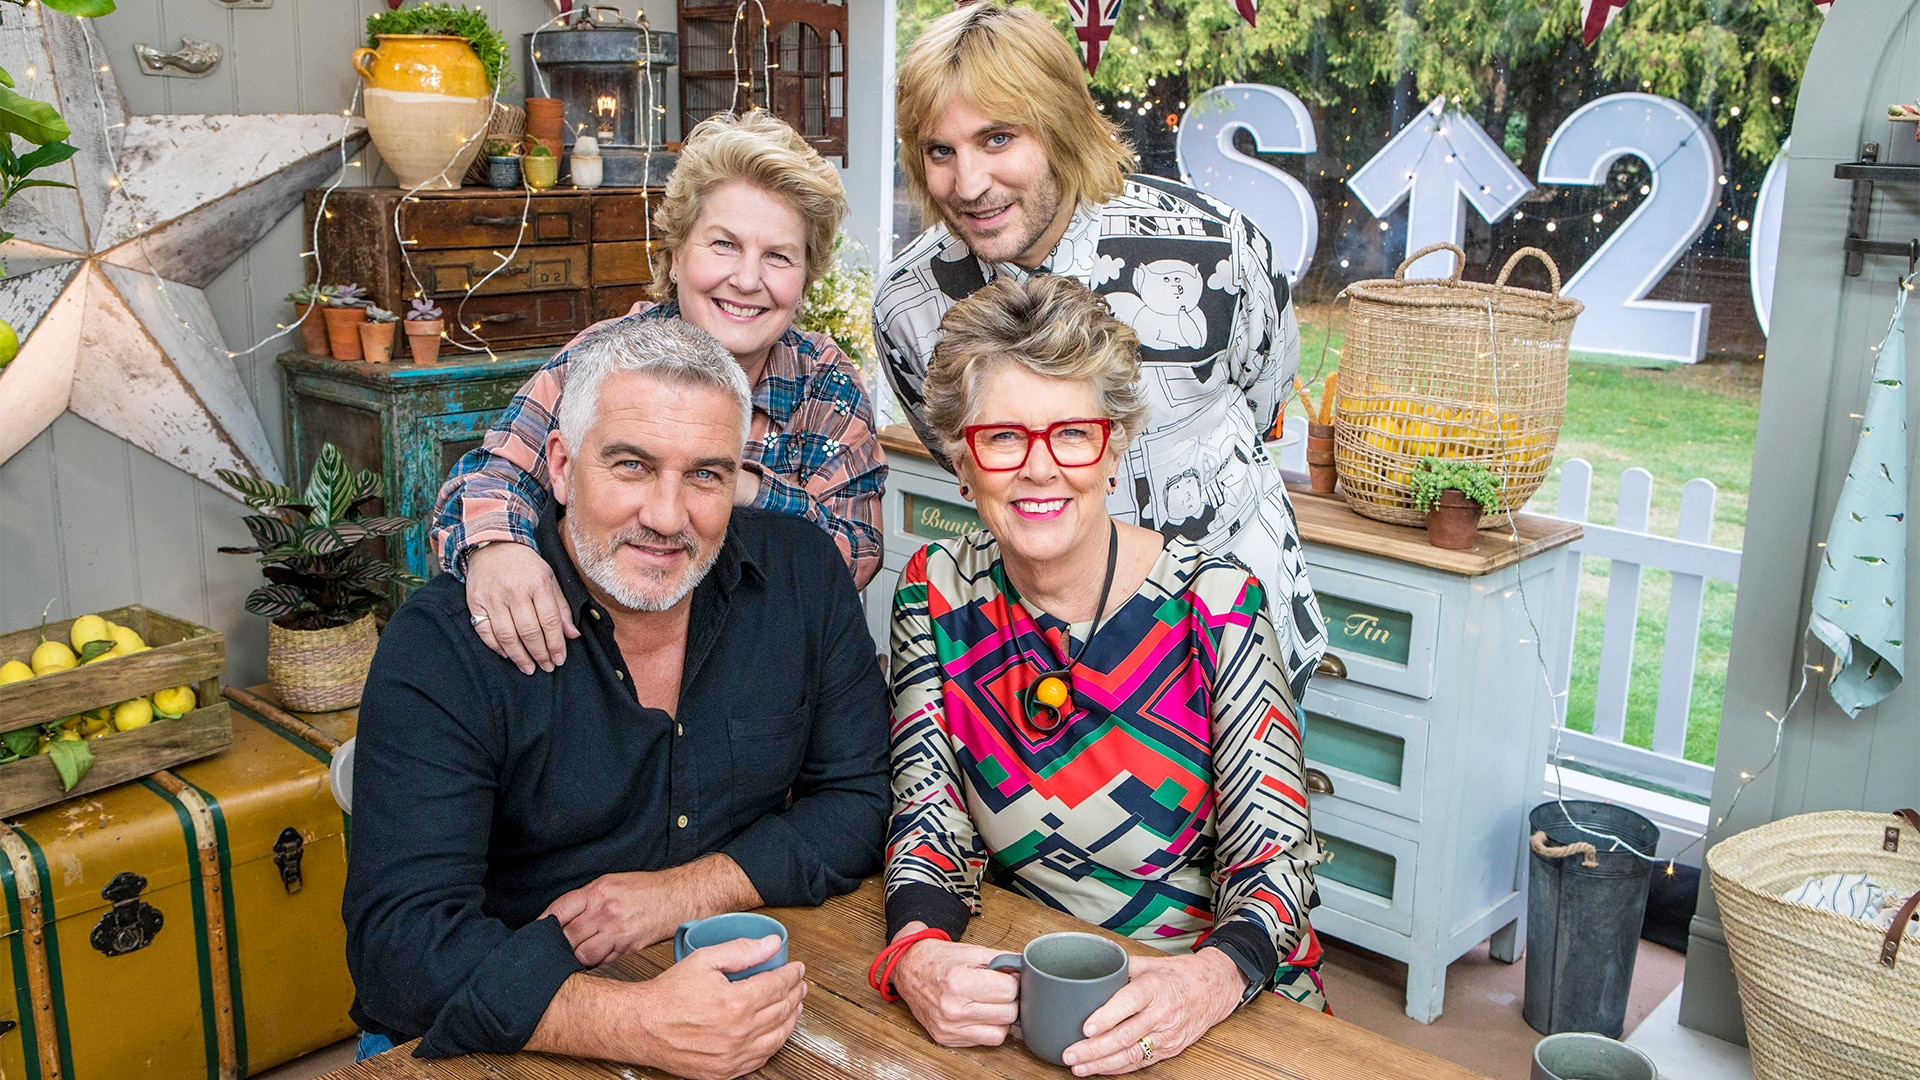 The Great Celebrity Bake Off for SU2C - All 4